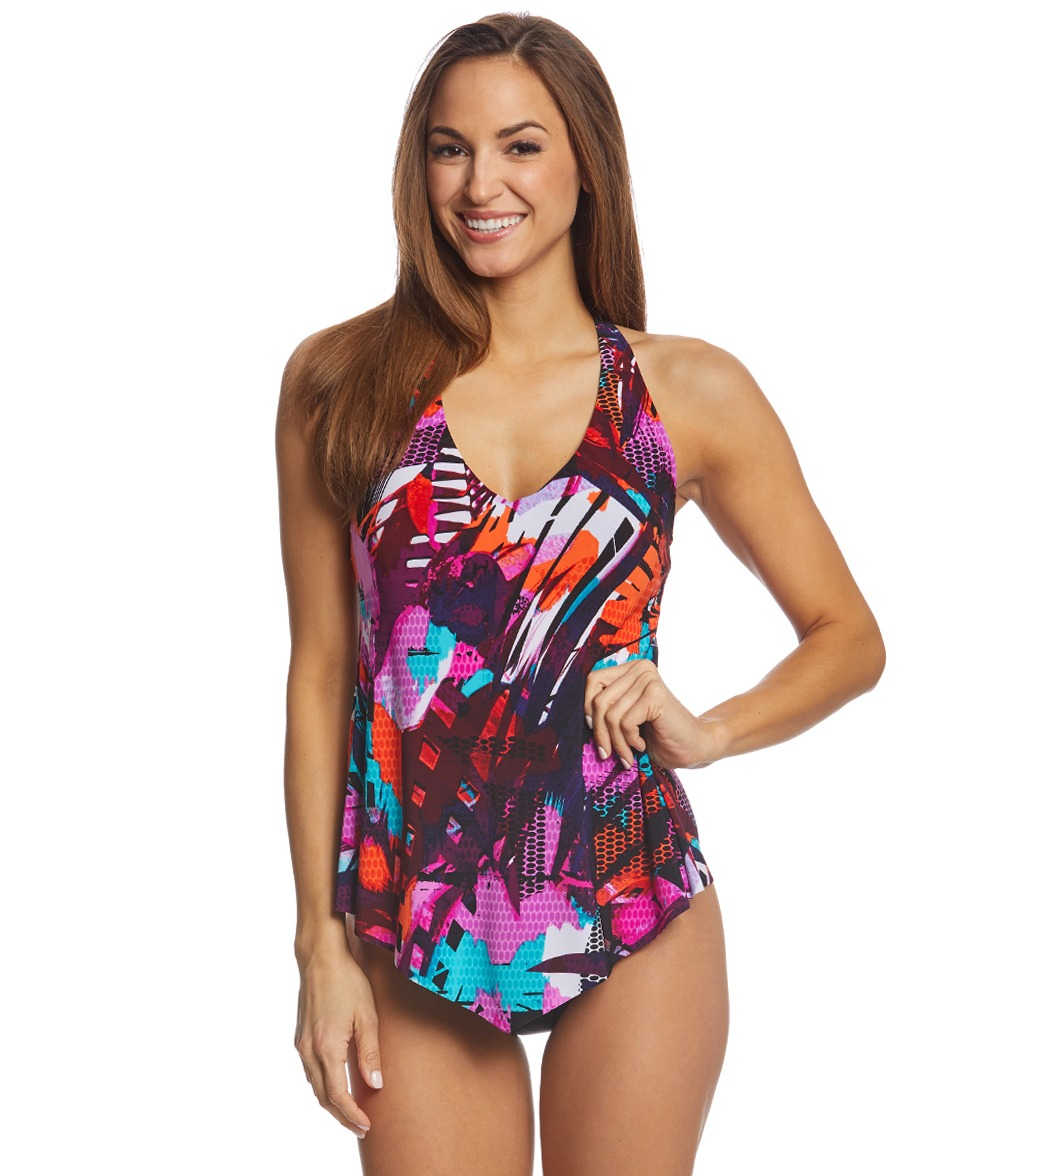 293b1cf763176 Magicsuit by Miraclesuit Cypress Taylor Tankini Top at SwimOutlet.com -  Free Shipping